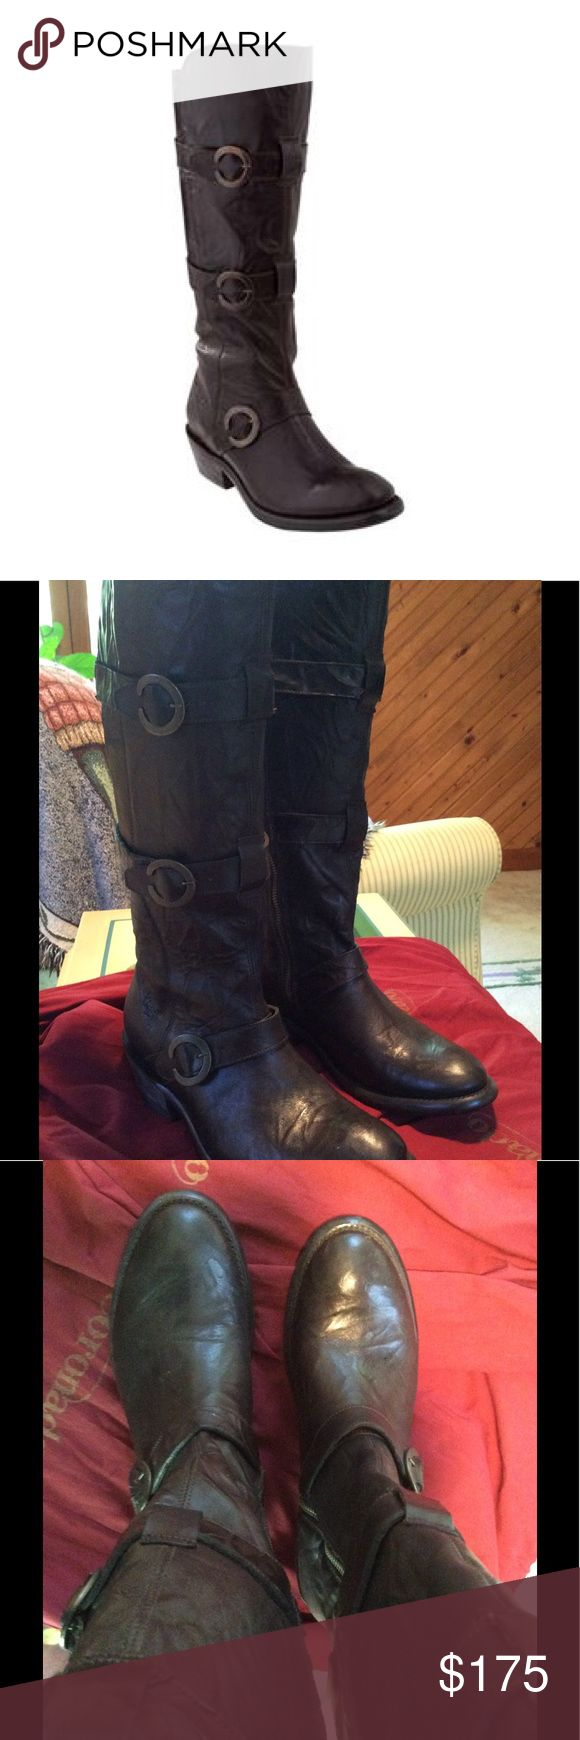 """Ariat Women's Alta Fashion Boots 9M Excellent/new condition worn 1 or 2 x. From Ariat: The Coronado Collection Alta boots are """"vintage elegance w/ bold style. The Equestrian-inspired detailing; antiqued hardware, hand-nailed tanned sole, & bold three-strap design give it a confident look.""""    *15"""" Shaft height  * Prem. full-grain leather foot & shaft * Resolable Goodyear welt * Signature leather lining * Refined craftsmanship * Hand-nailed, Veg. Tan leather outsole * Integrated…"""